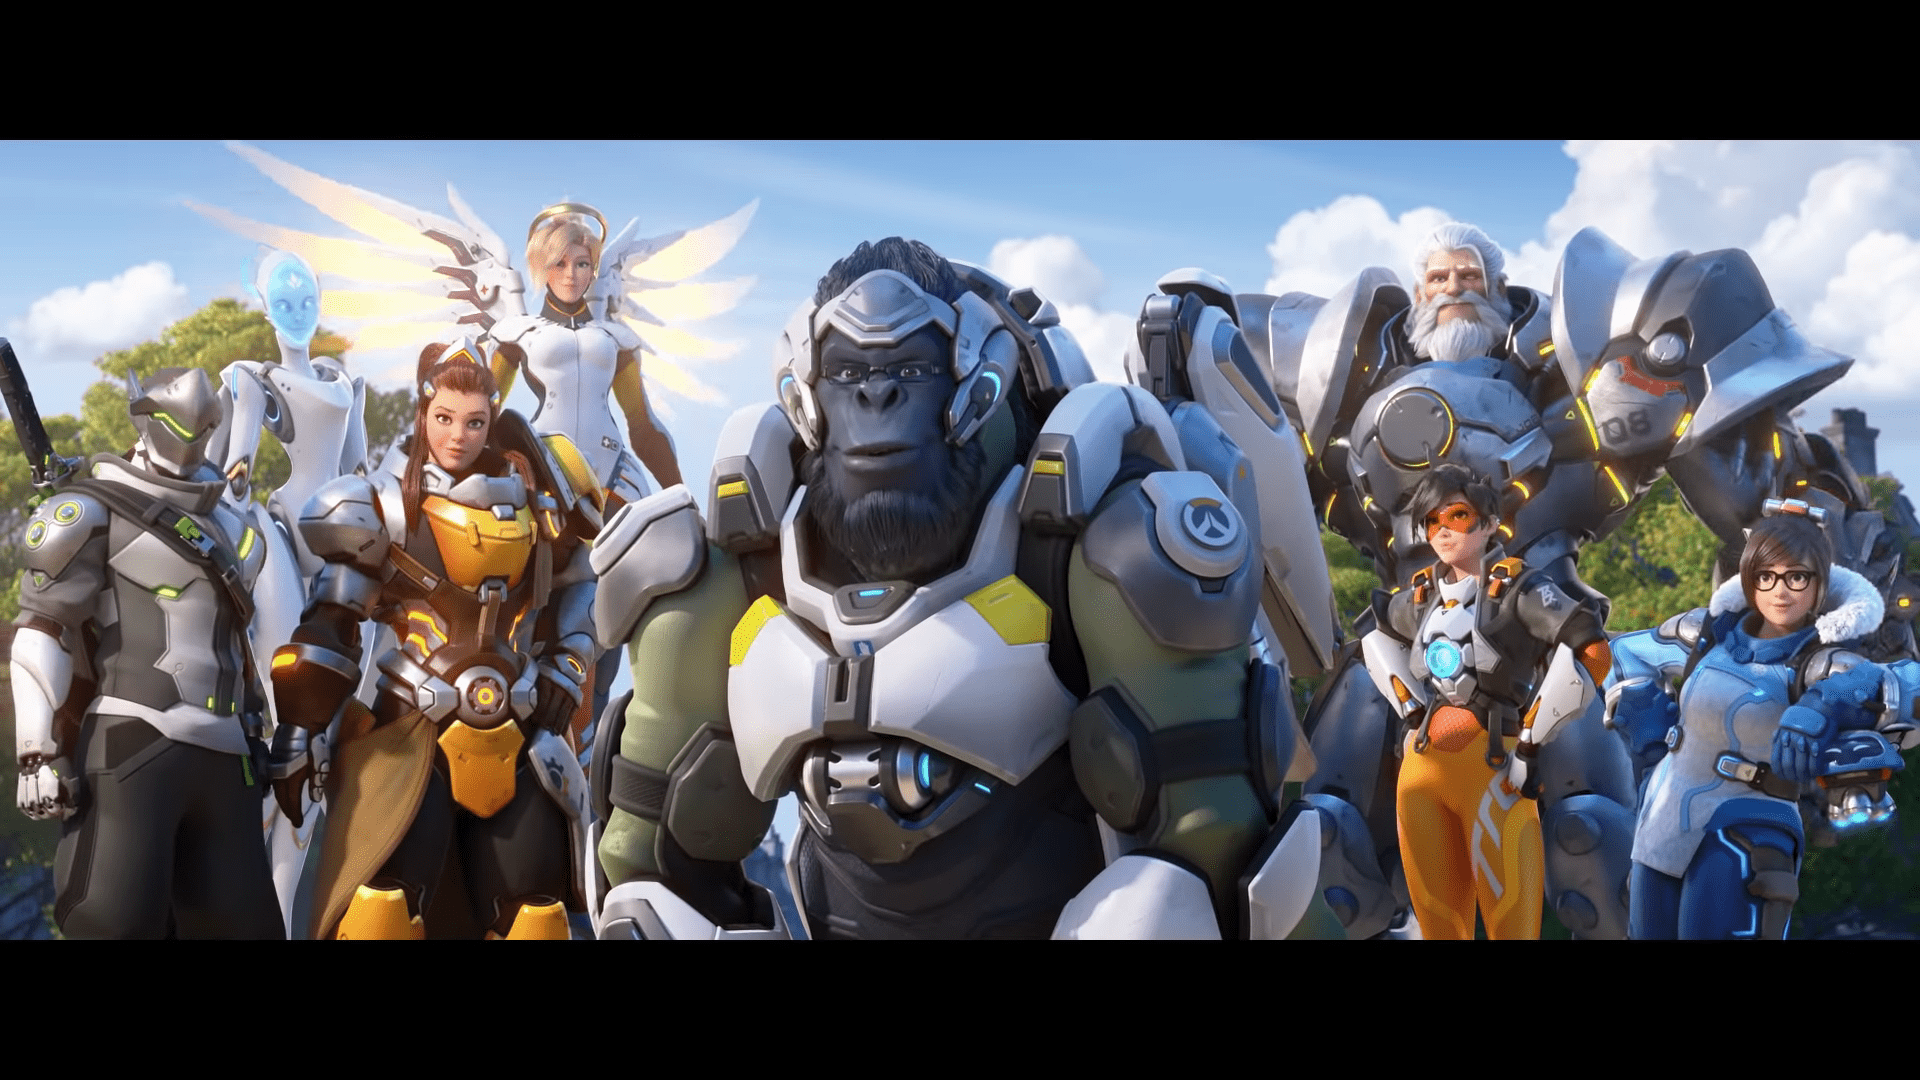 Overwatch Updates To Allow Ranked Open Queue Along With Role Queue And MMR Season Start Cap